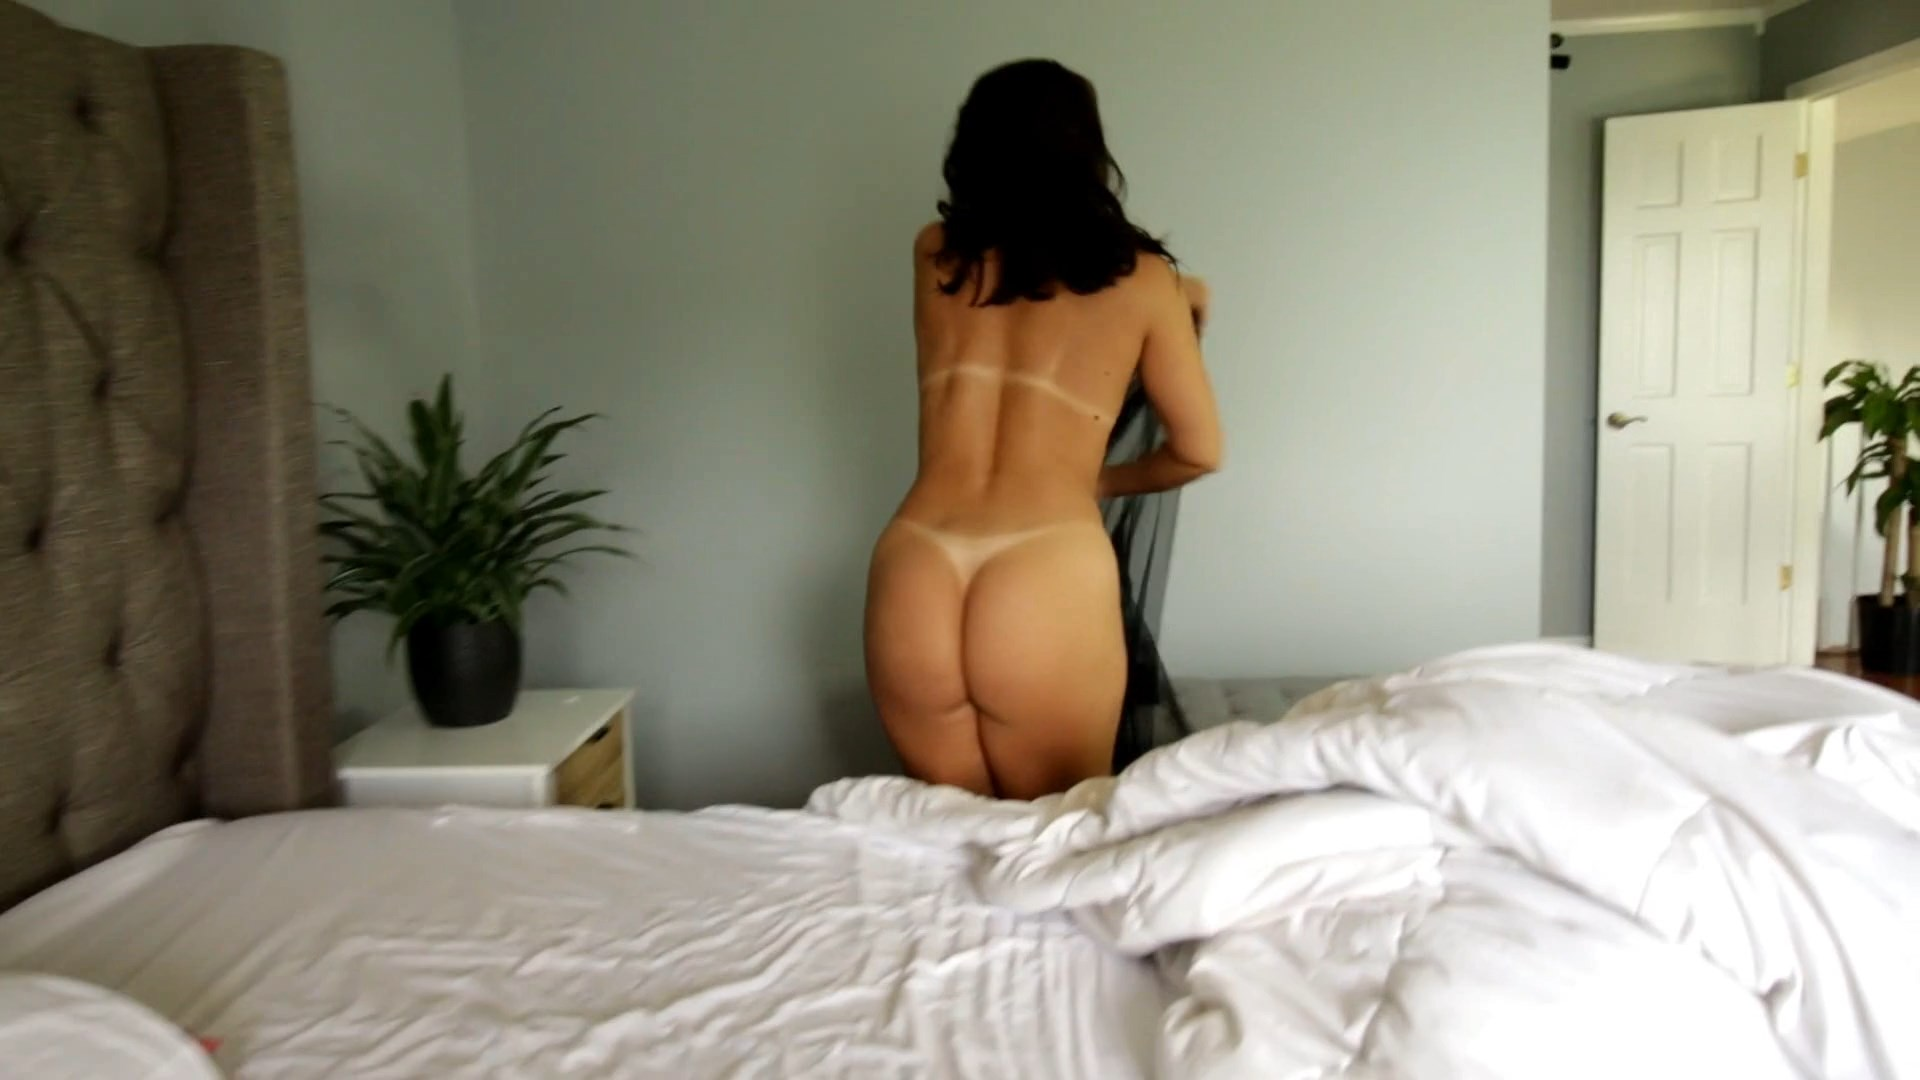 Florina Fitness Nude On Bed Video 19 - FULL VIDEO: Florina Fitness Nude Onlyfans!